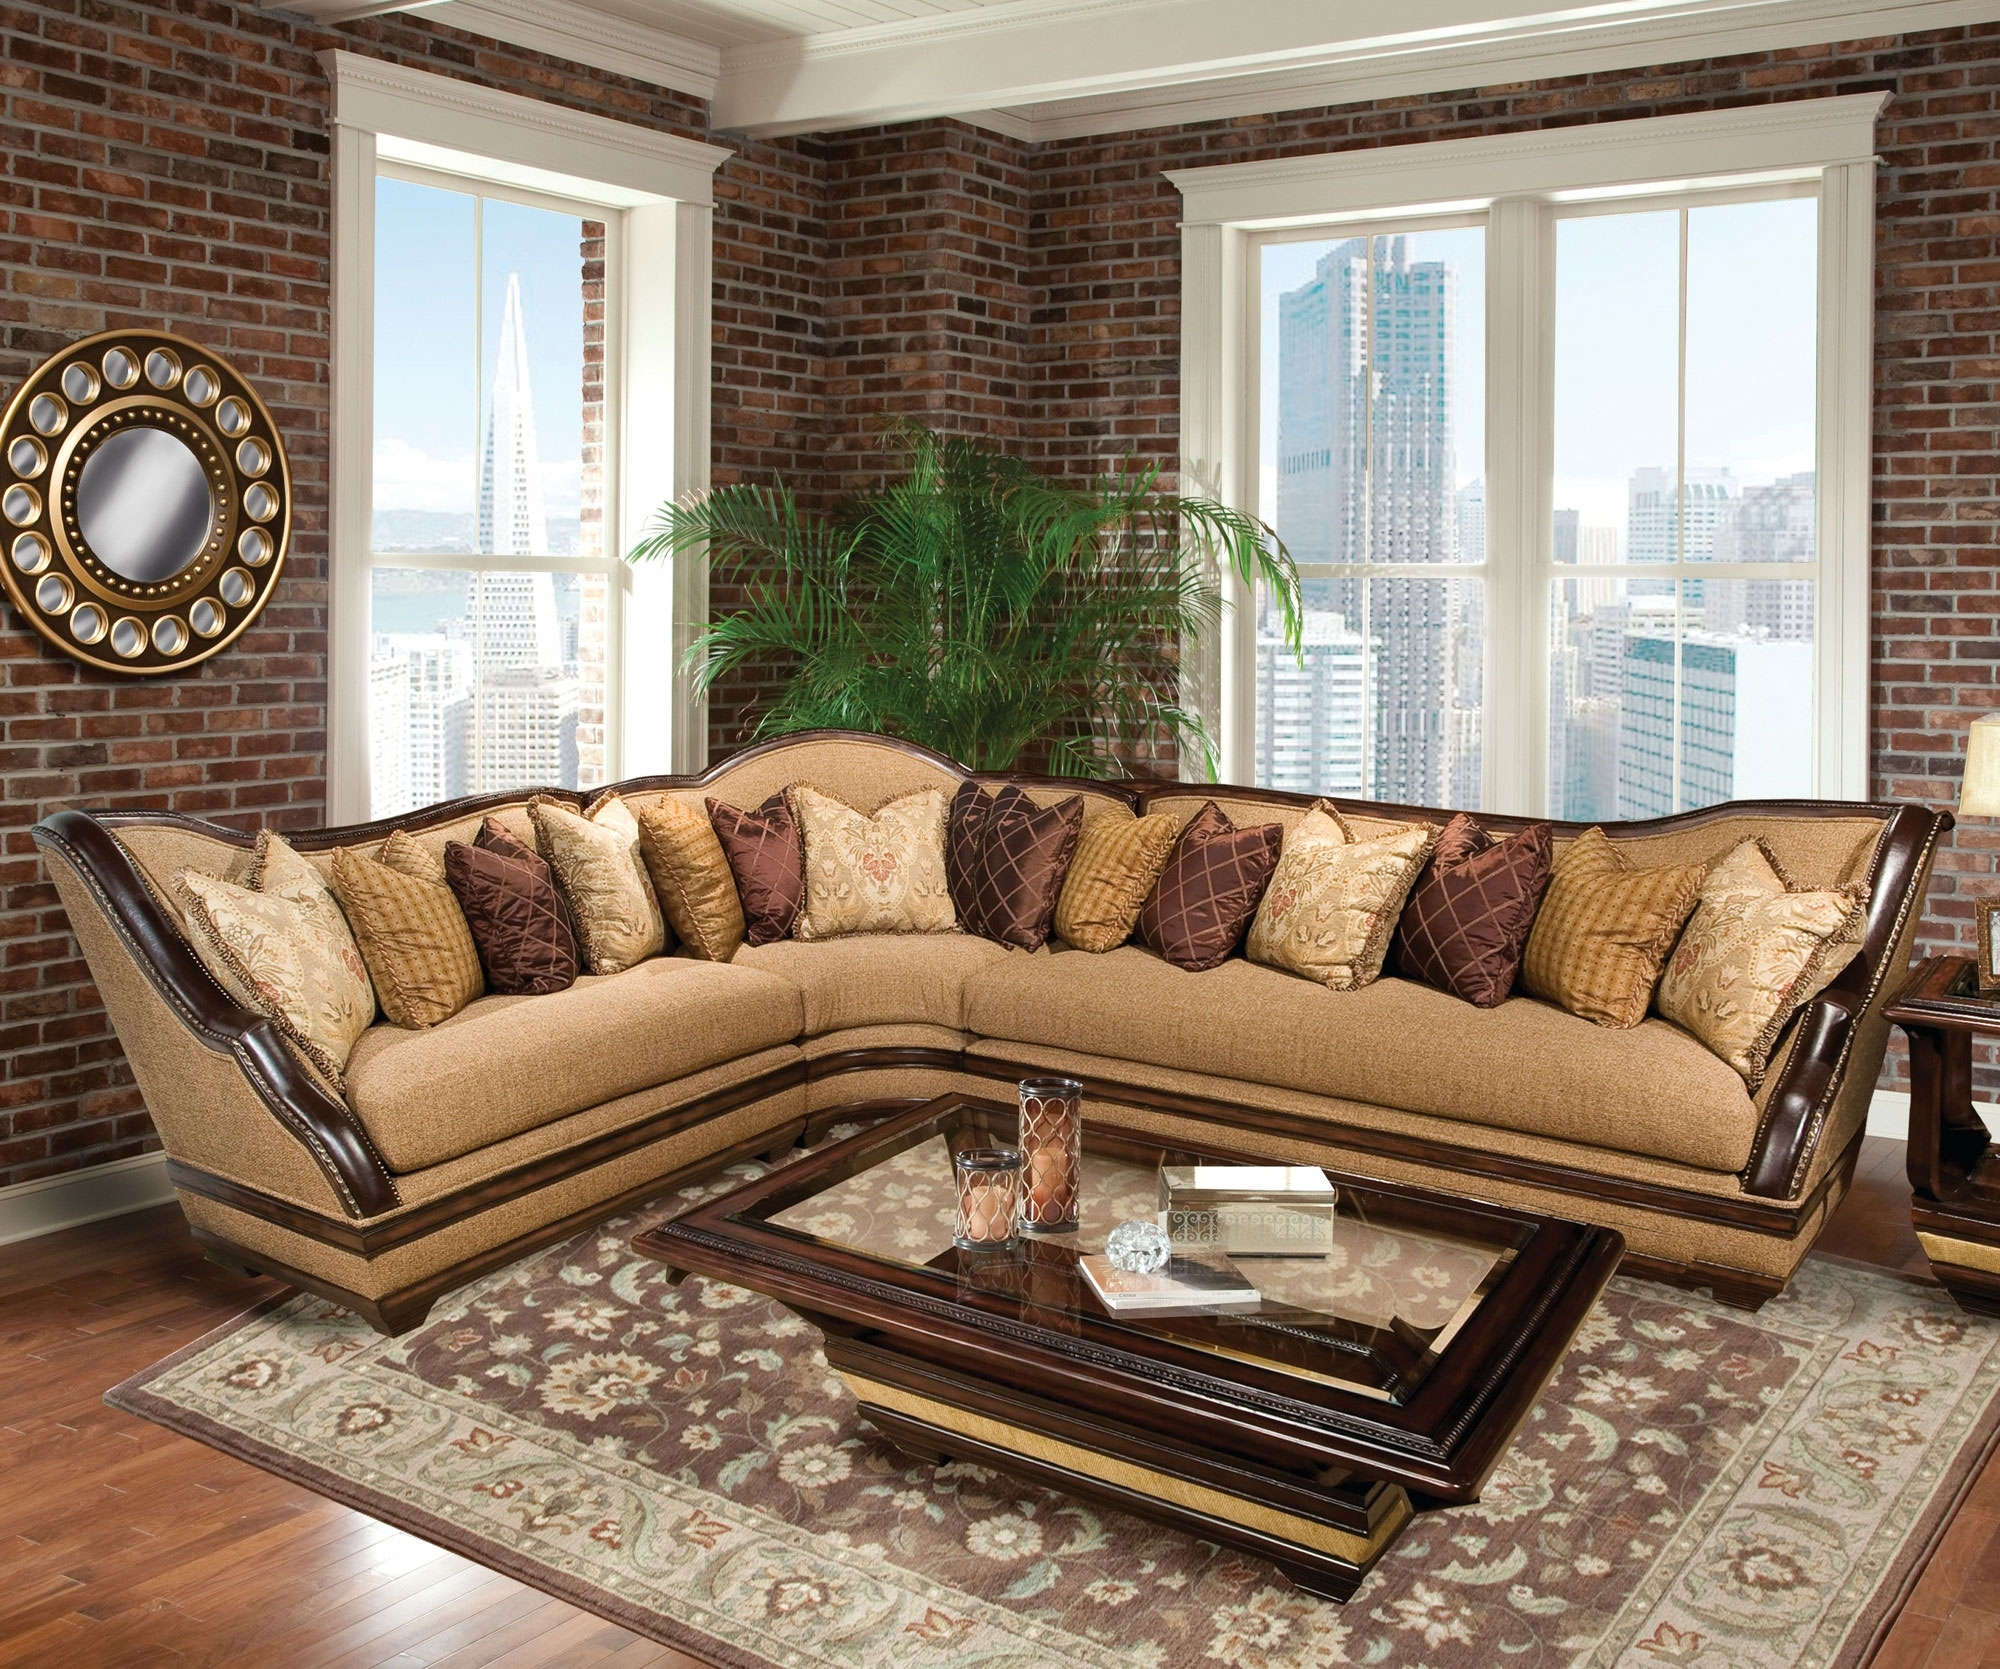 Luxury High End Sectional Sofas 81 For Your Navy Blue Sleeper Sofa With Regard To High End Sectional Sofas (Image 7 of 10)